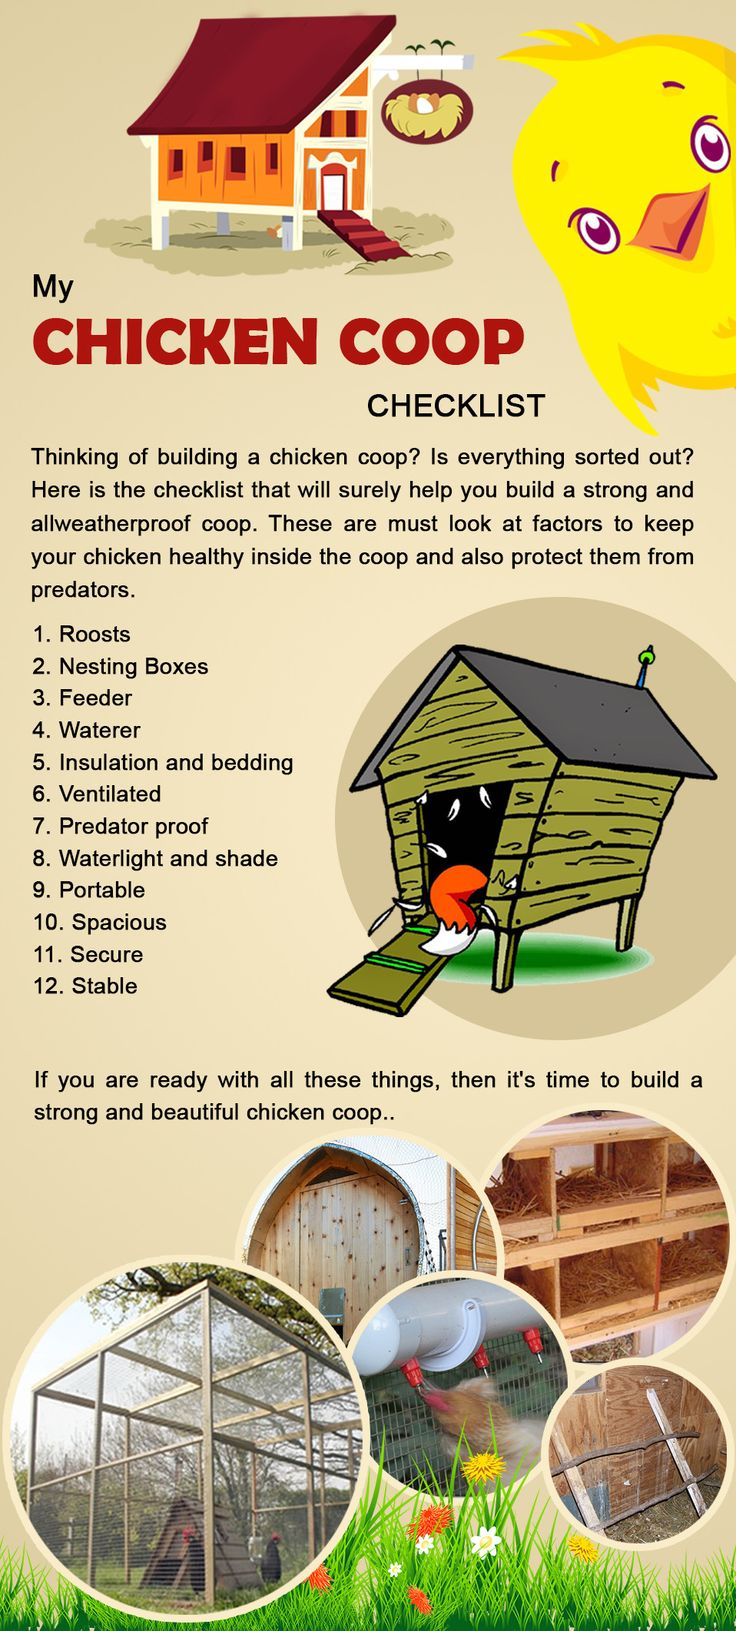 Thinking to buy a chicken coop? We are interested to giving you some important tips that you should consider while purchasing a chicken coop. You should take care about the safety of chickens,the chicken coop should be predator safe, second thing is there should be sufficient space in the coop and there should be good passage for air and light, so you can buy such type of chicken coop with wide range of option only from benedicts group limited at amazing price.